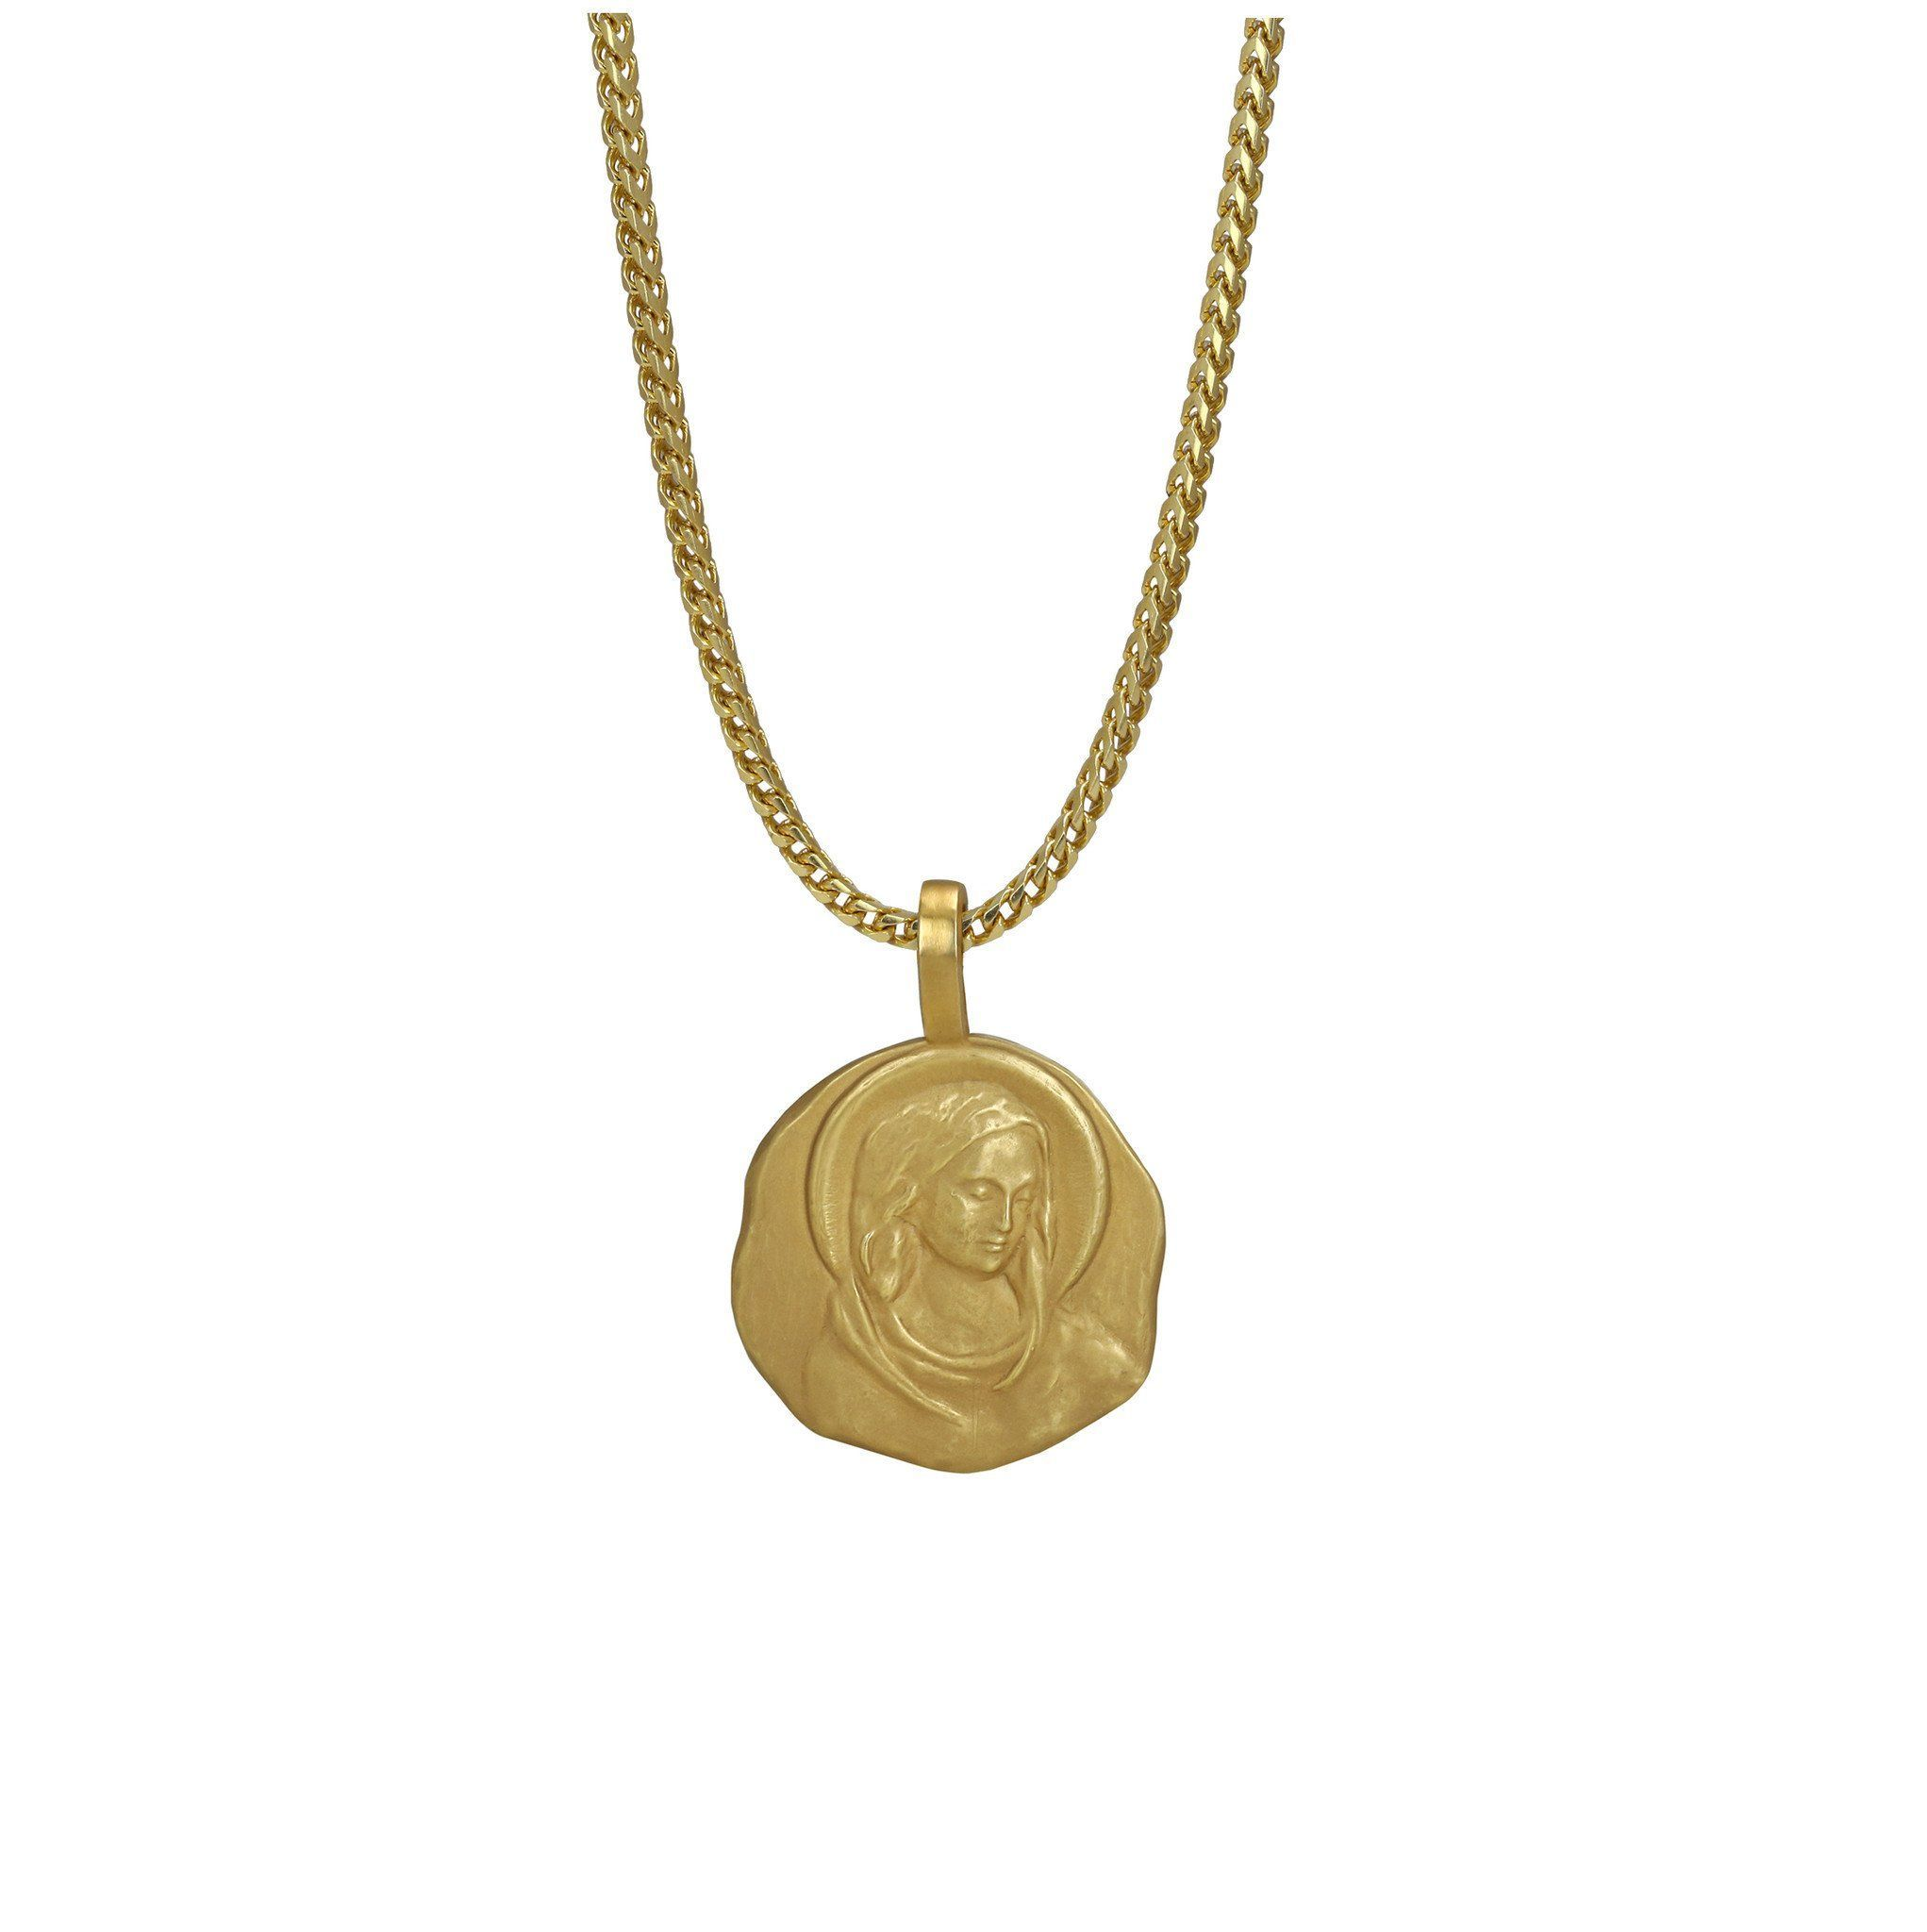 Kanye West S Jewelry Line Is Here 11k Pendants All Jewelry Website Sparkly Jewelry Brighton Jewelry